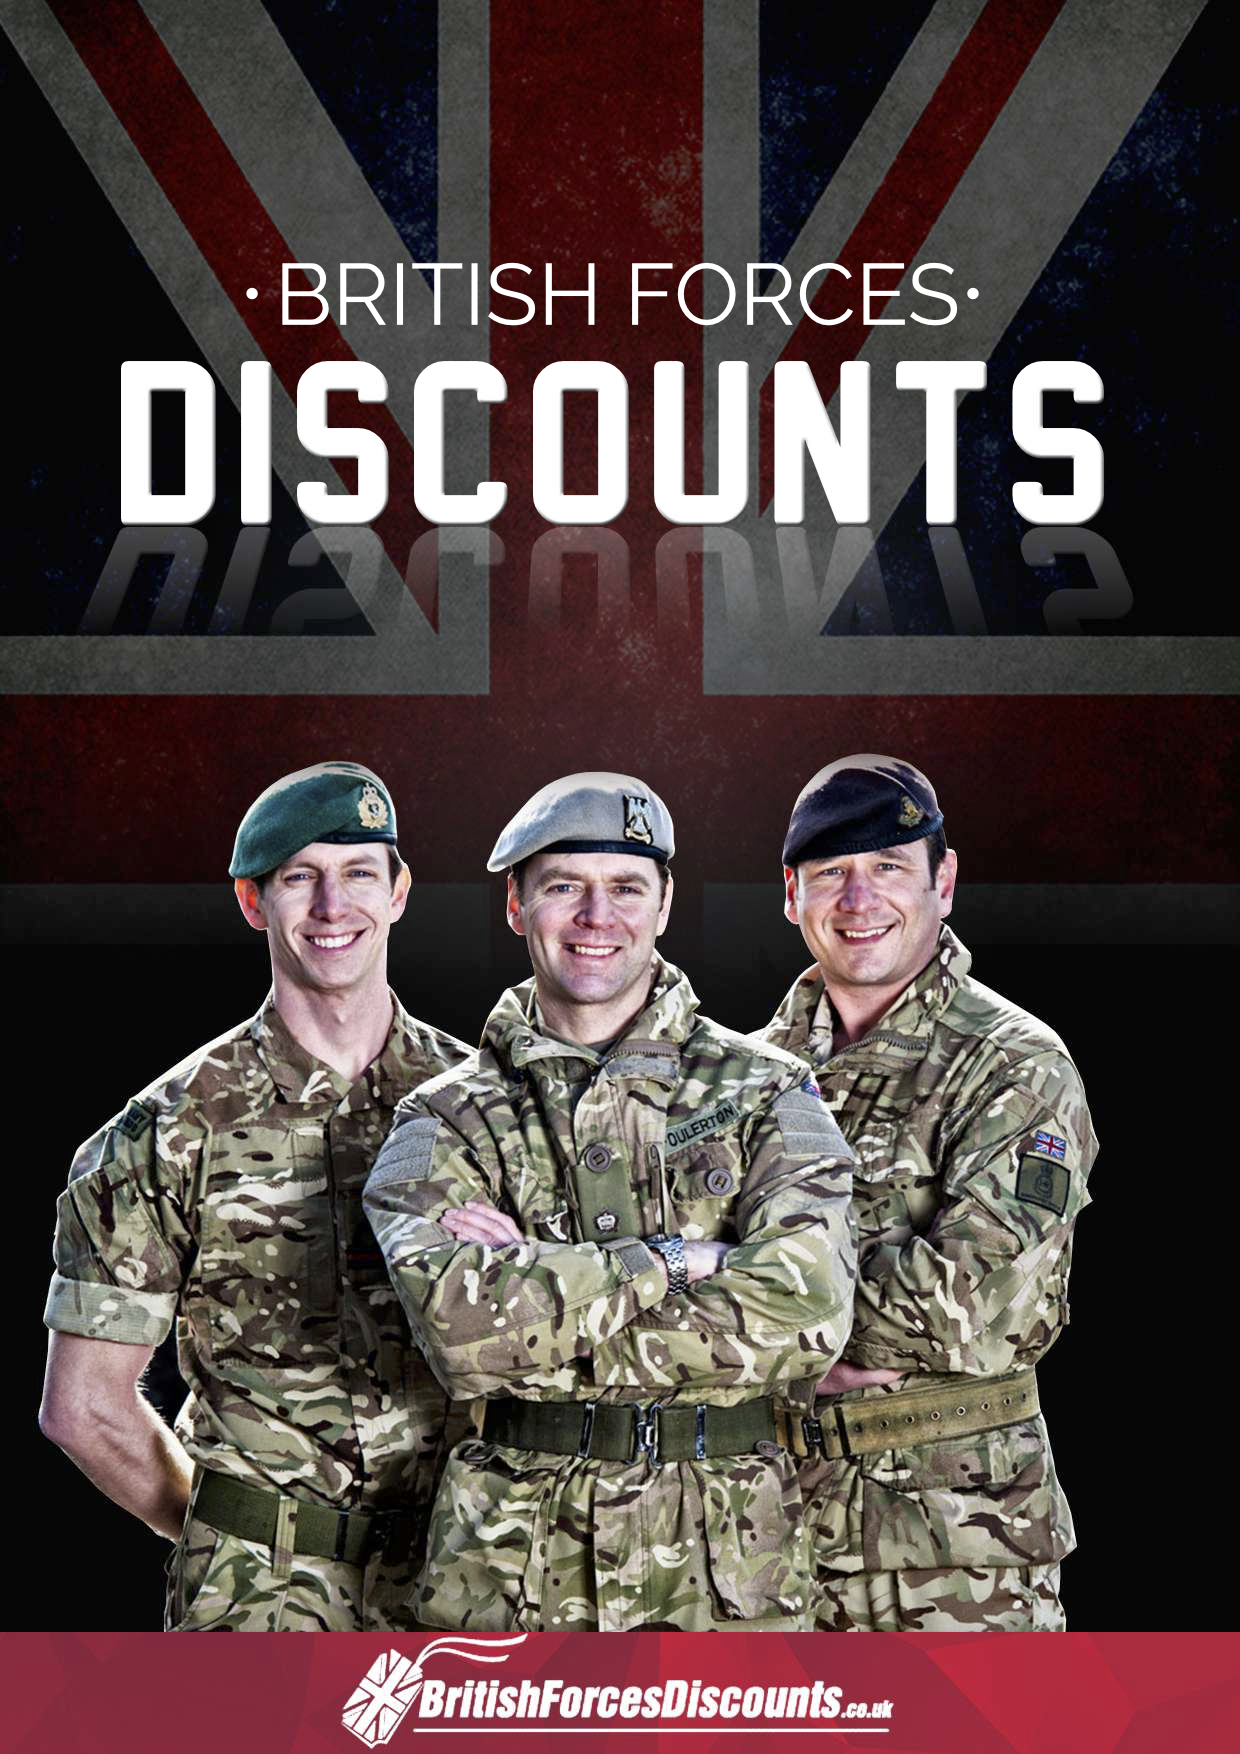 Discounts for British armed forces from Complete Furniture Services in Bristol